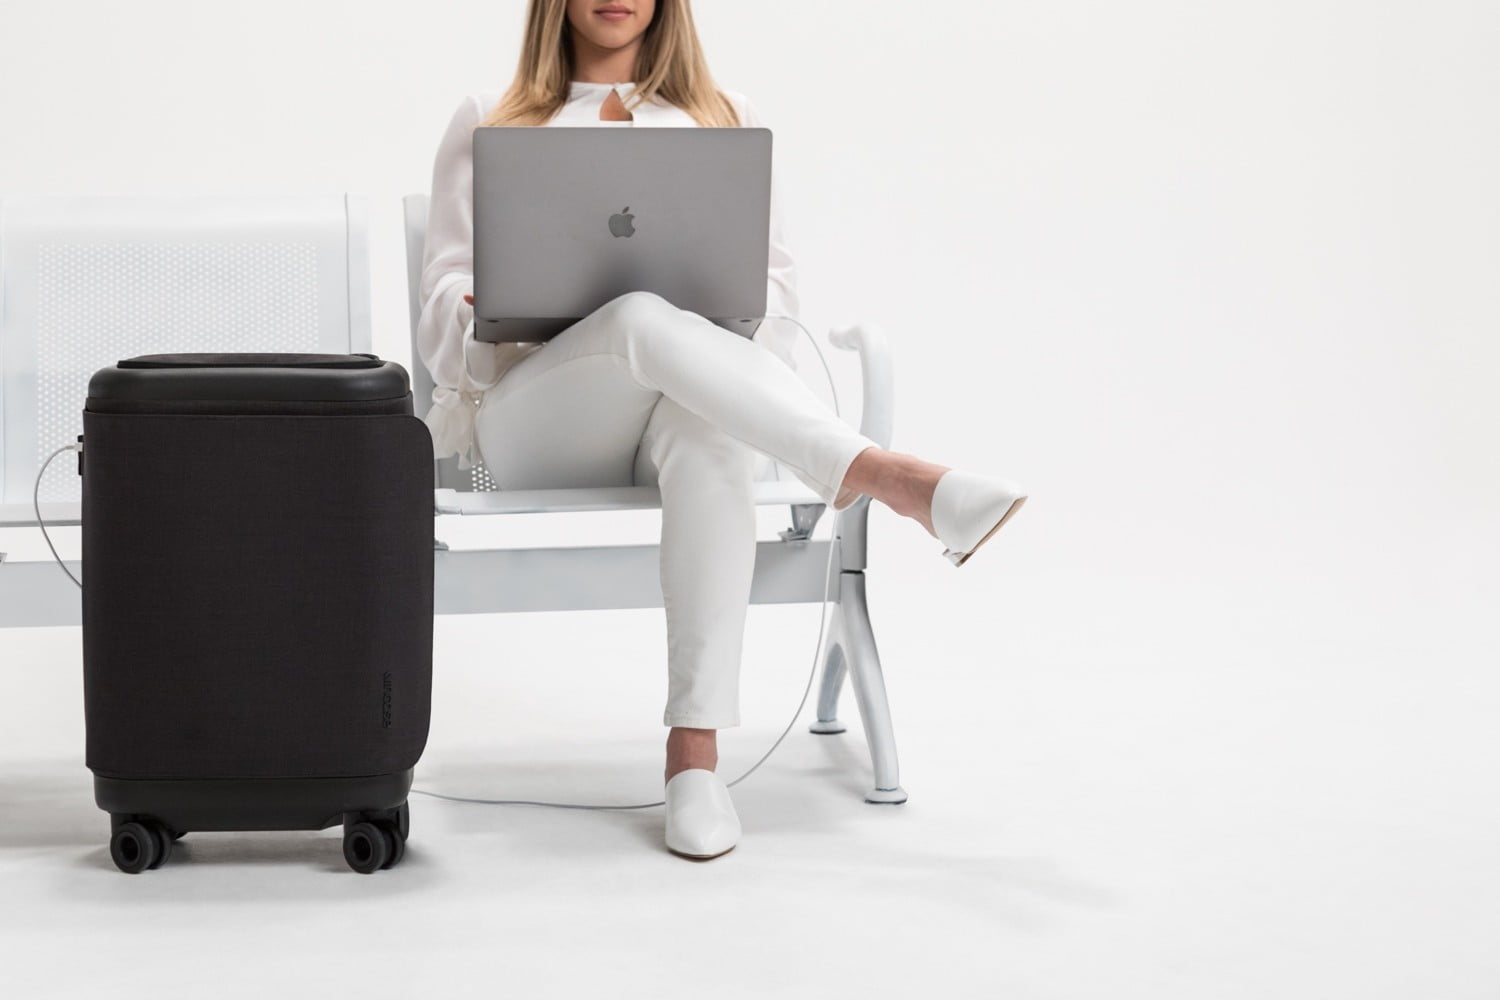 Best Knee Stroller The Best Smart Luggage For 2019 Digital Trends